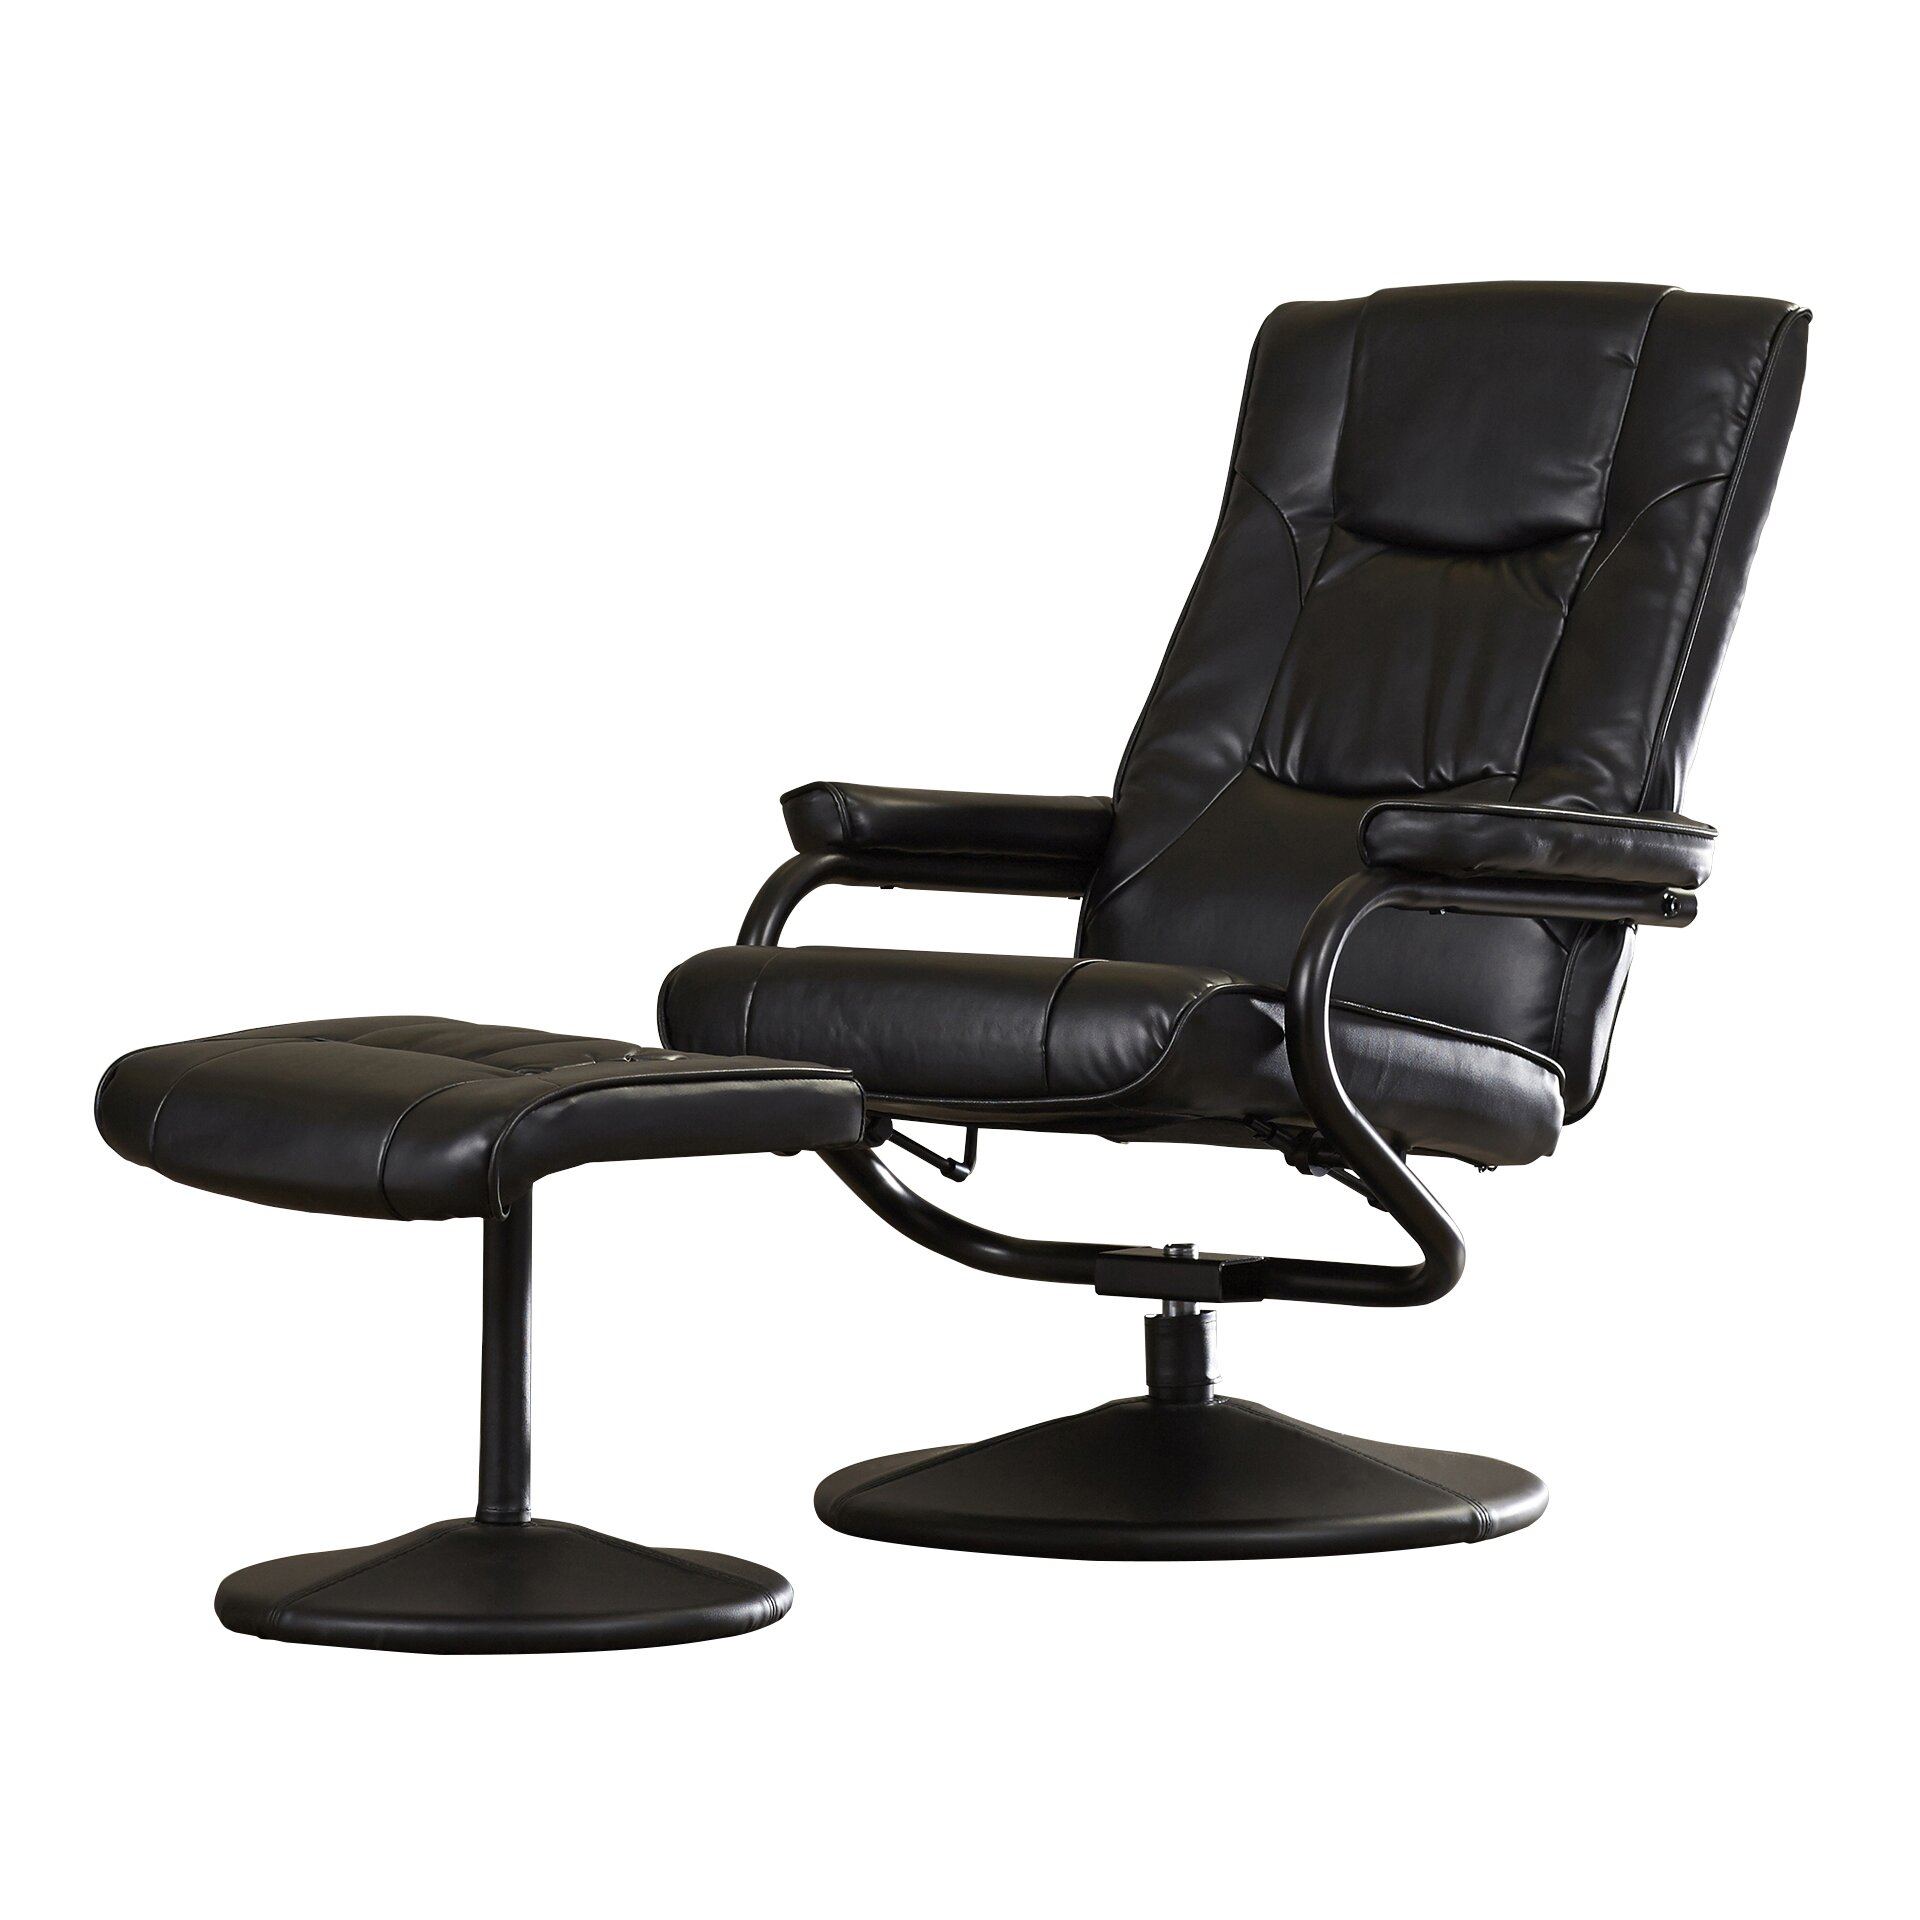 Charlton Home Soft Leather Reclining Office Chair and Ottoman Set – Recline Office Chair